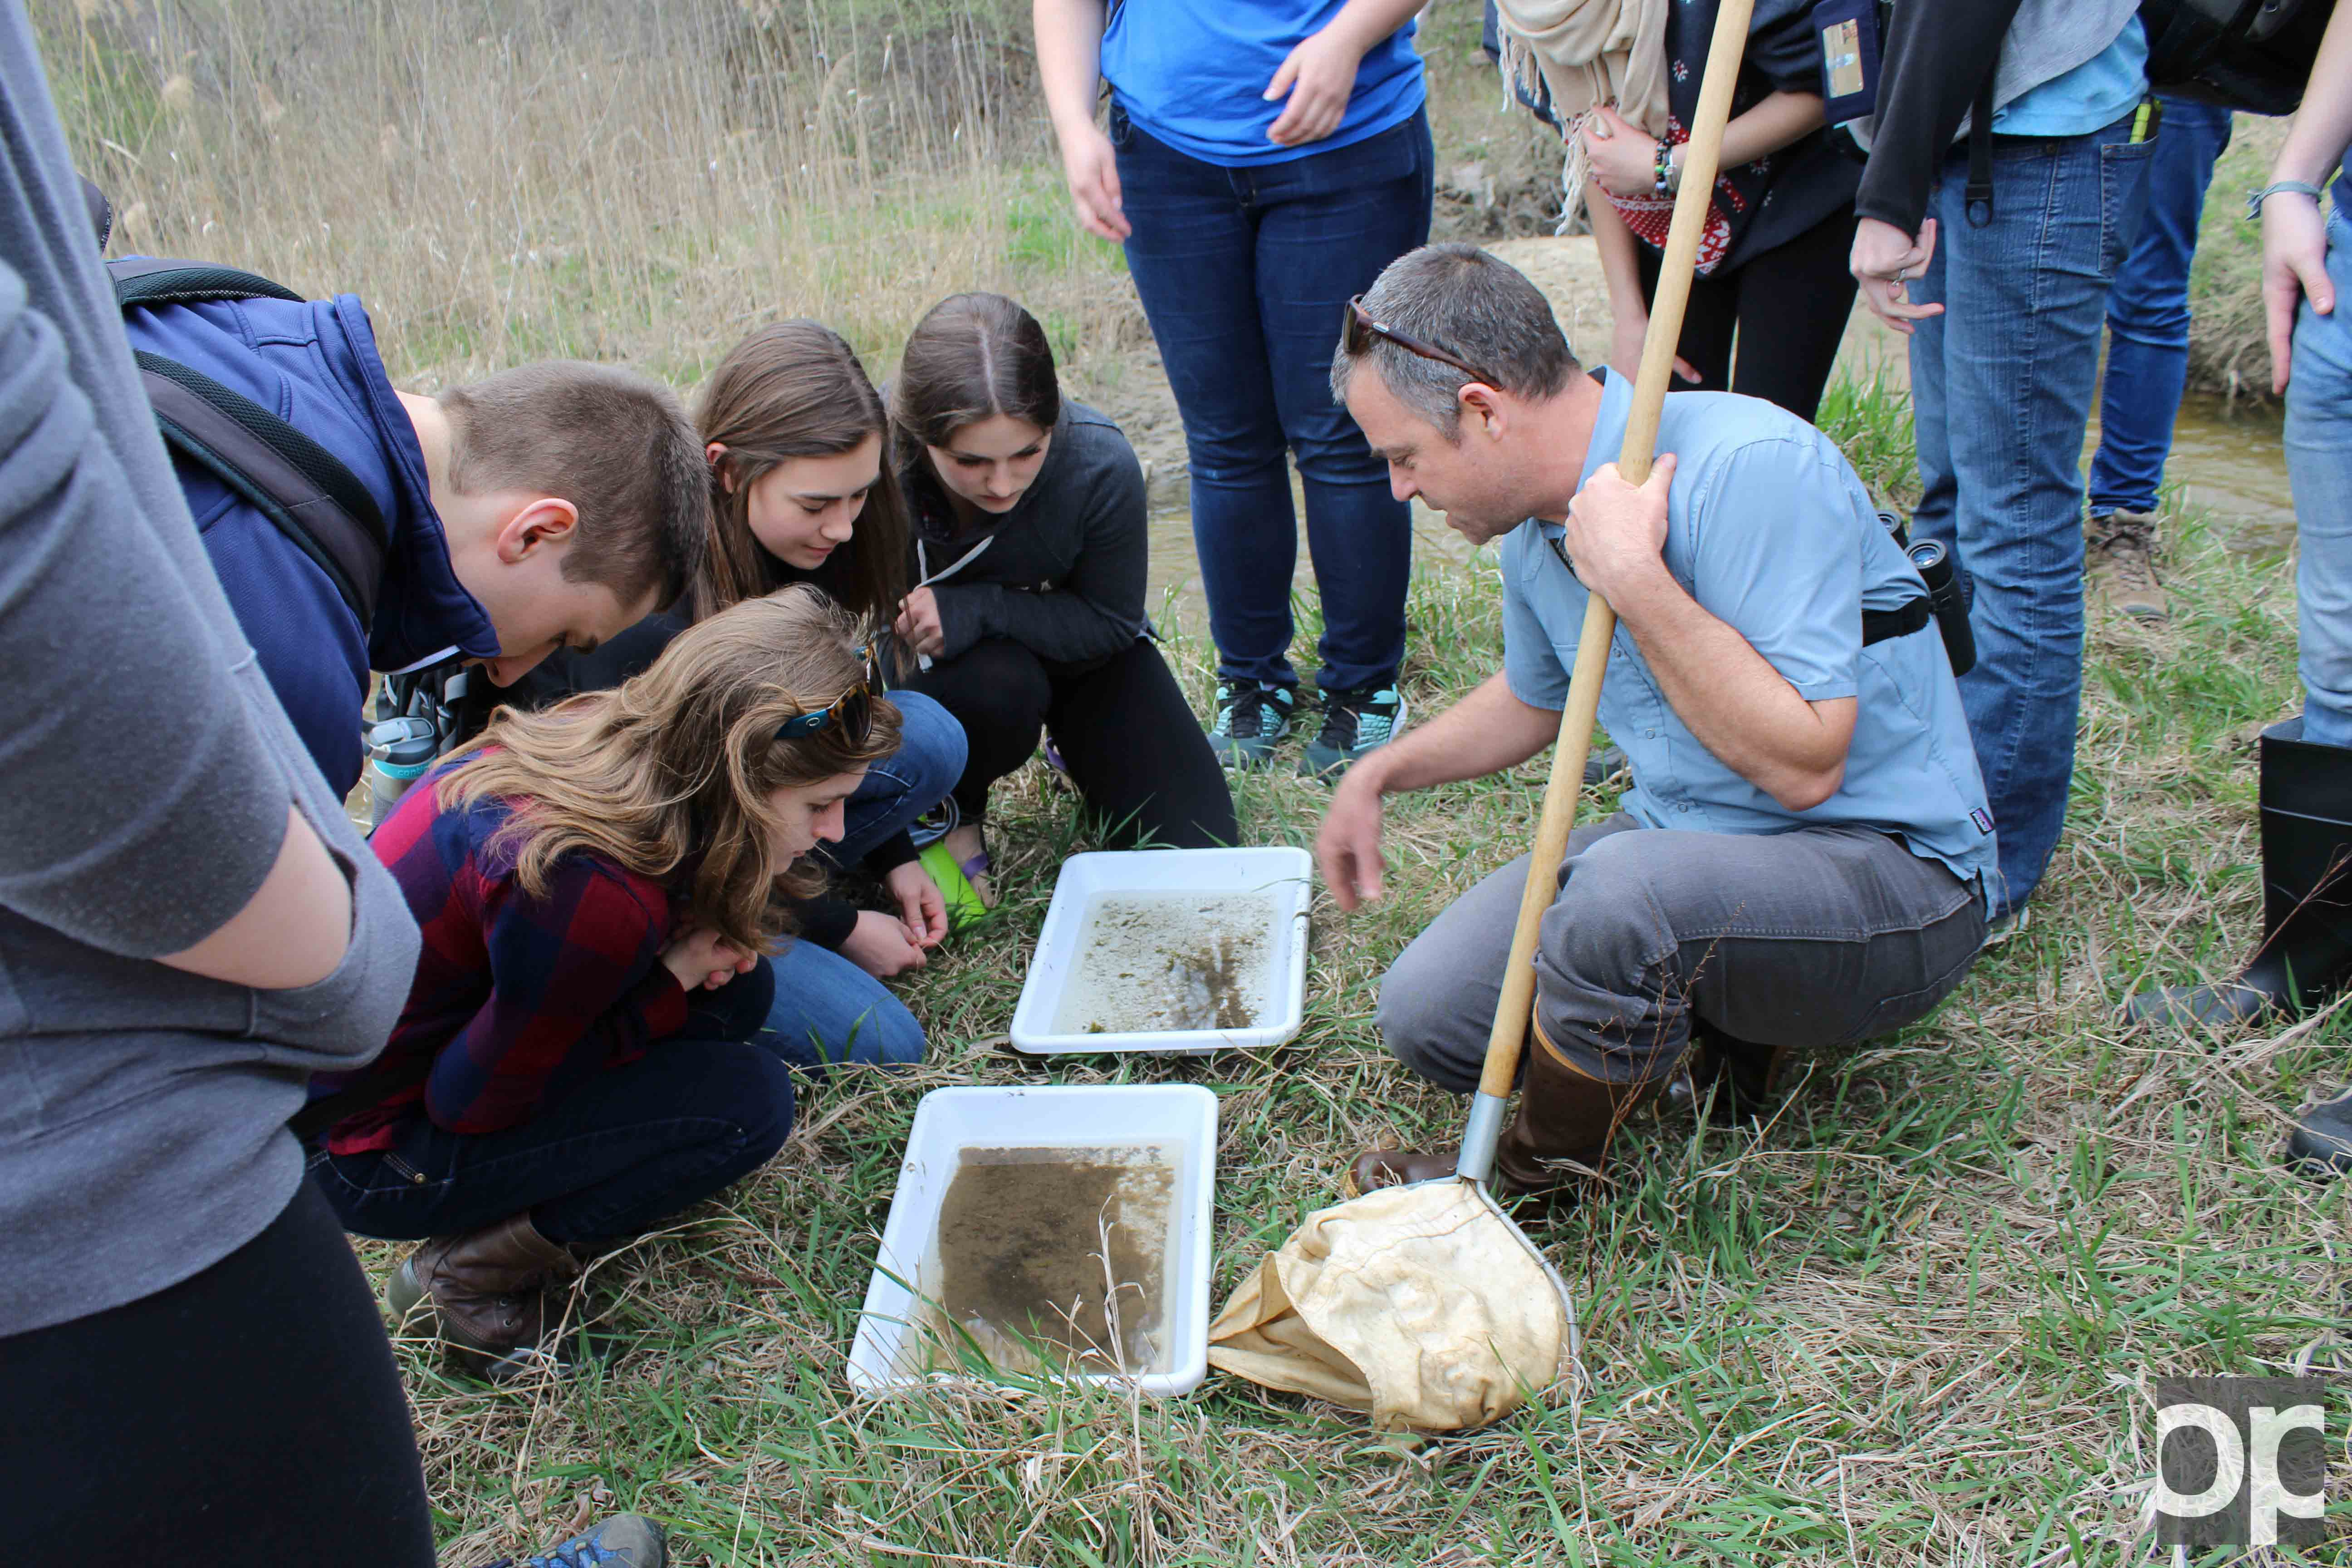 Students visit the preserves to study microbes and ecosystems.